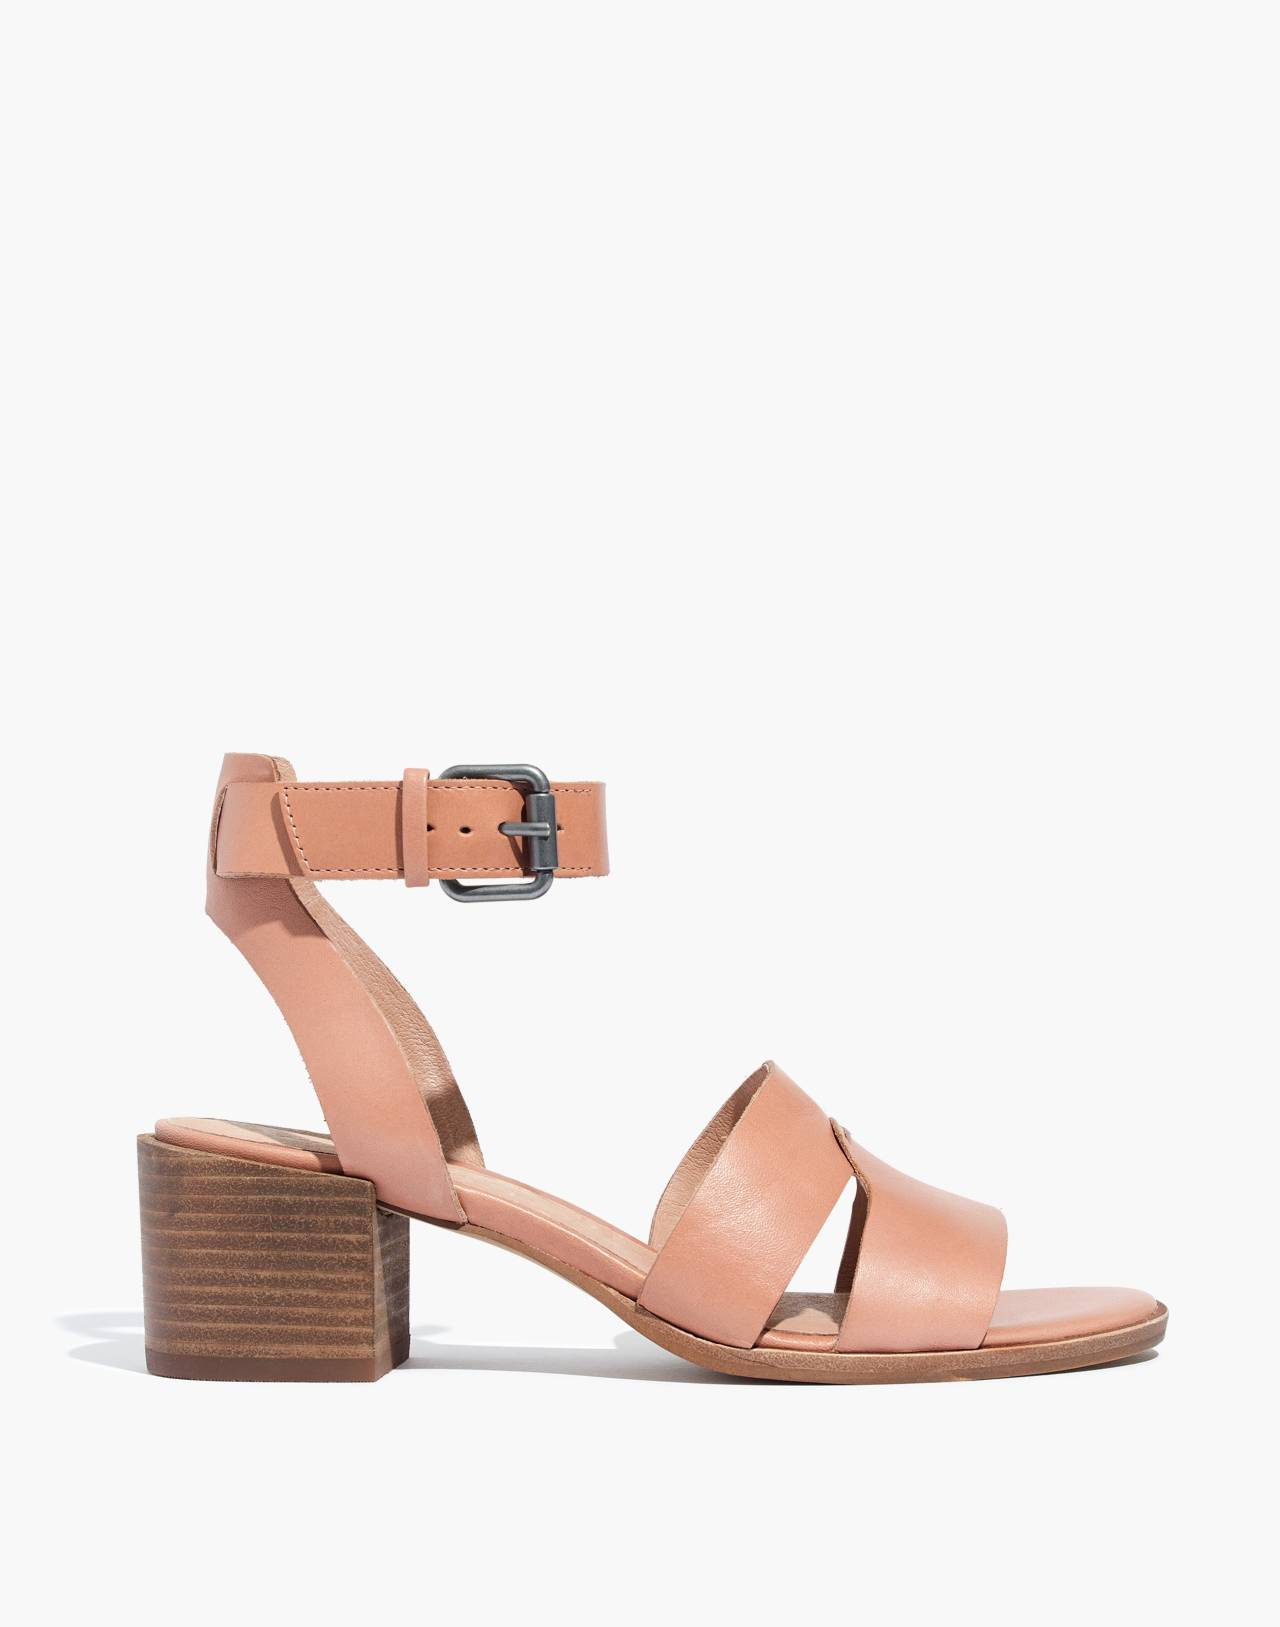 The Kate Sandal in antique coral image 2